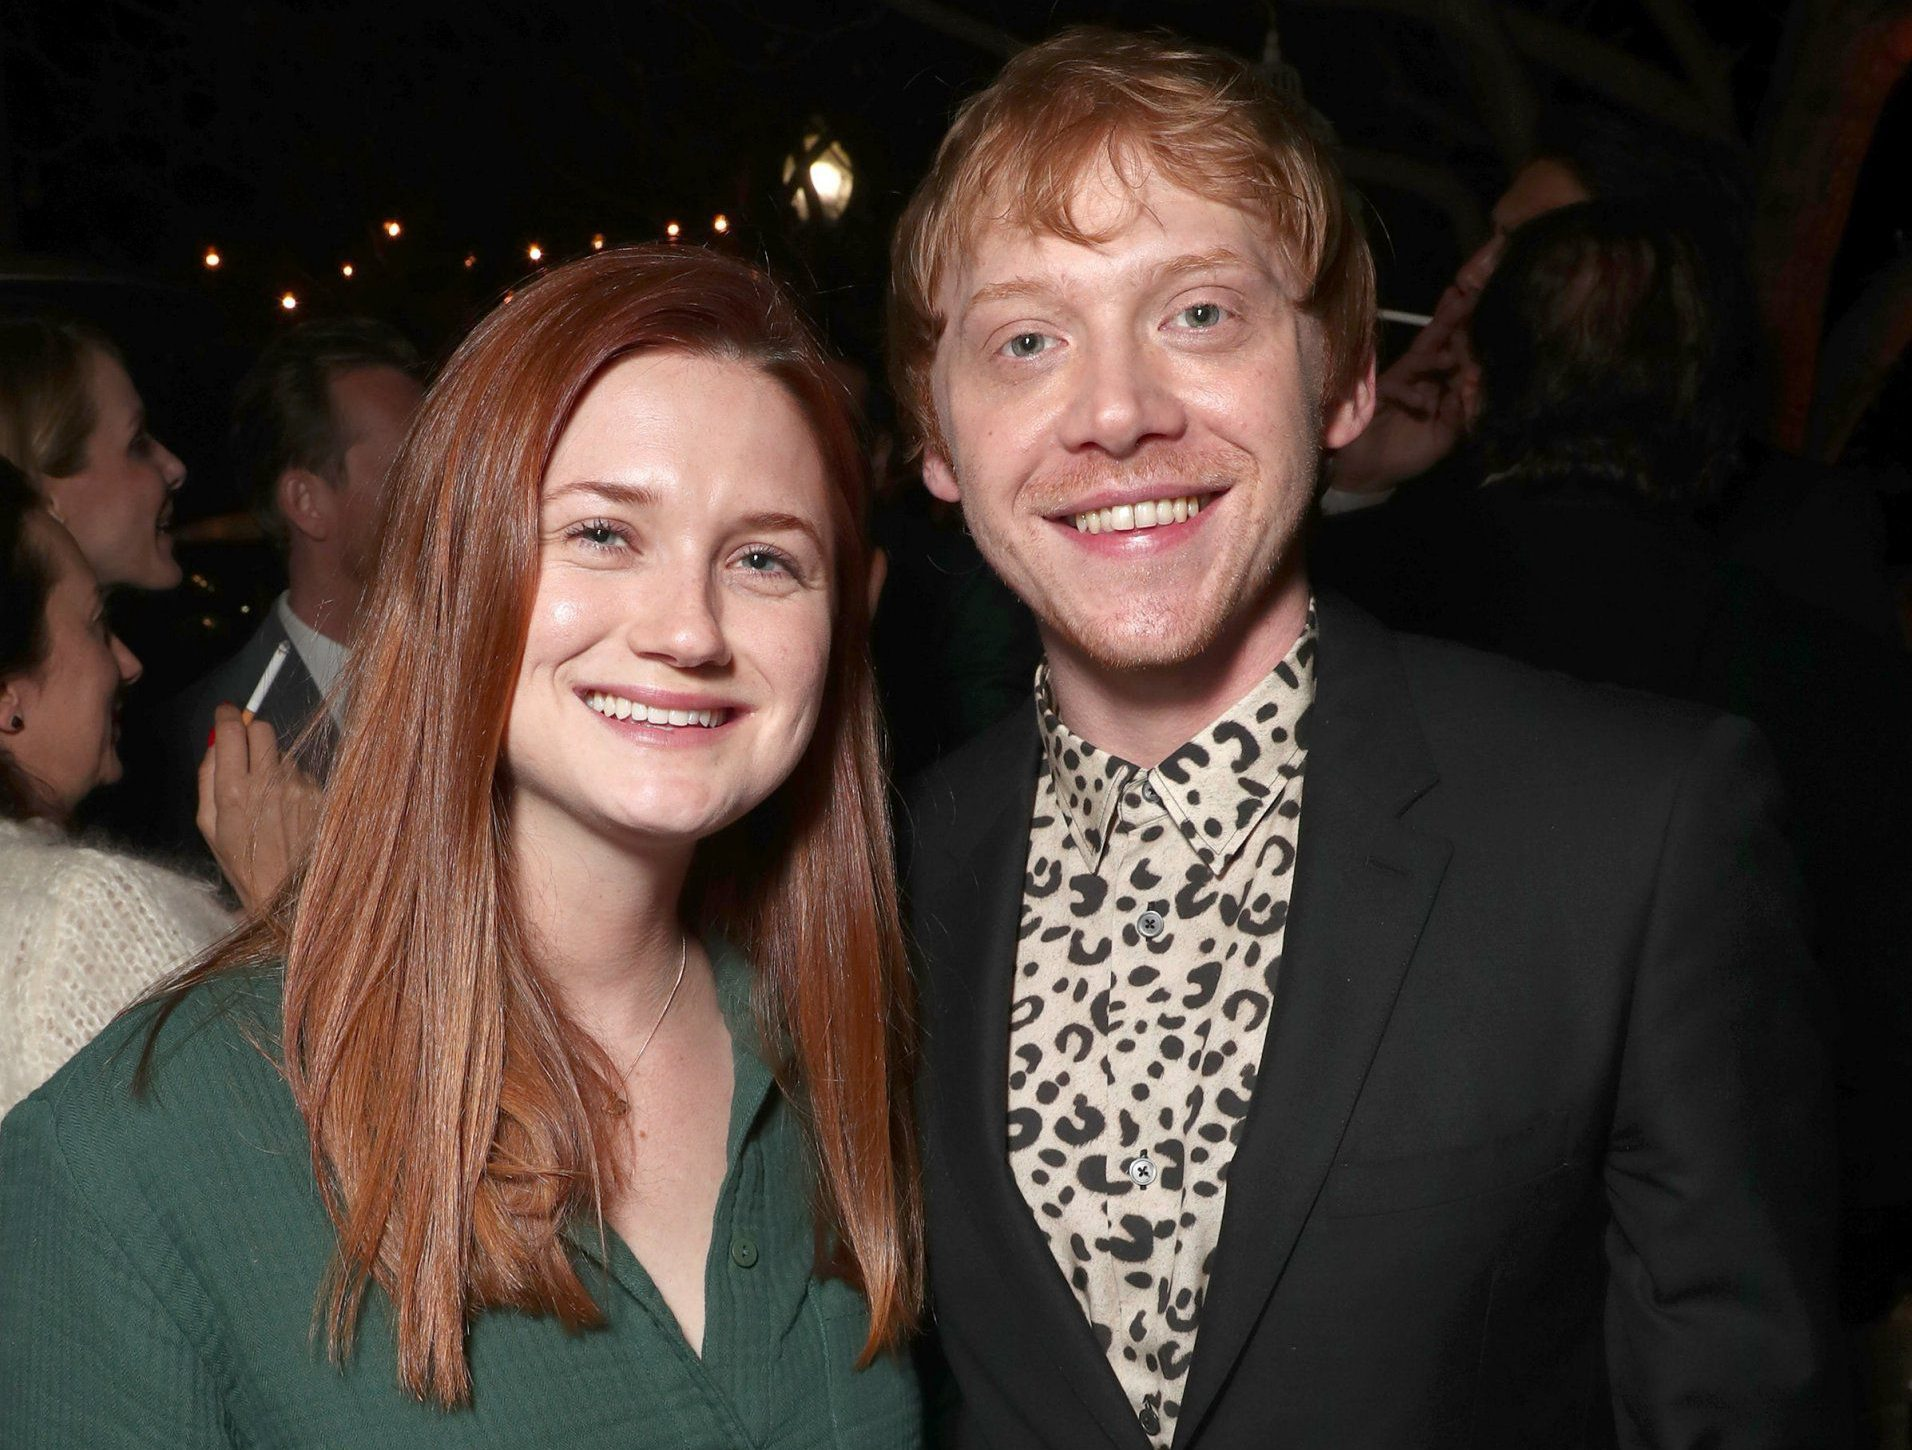 The Weasleys reunited as Rupert Grint is supported by on screen sister Bonnie Wright at Snatch screening